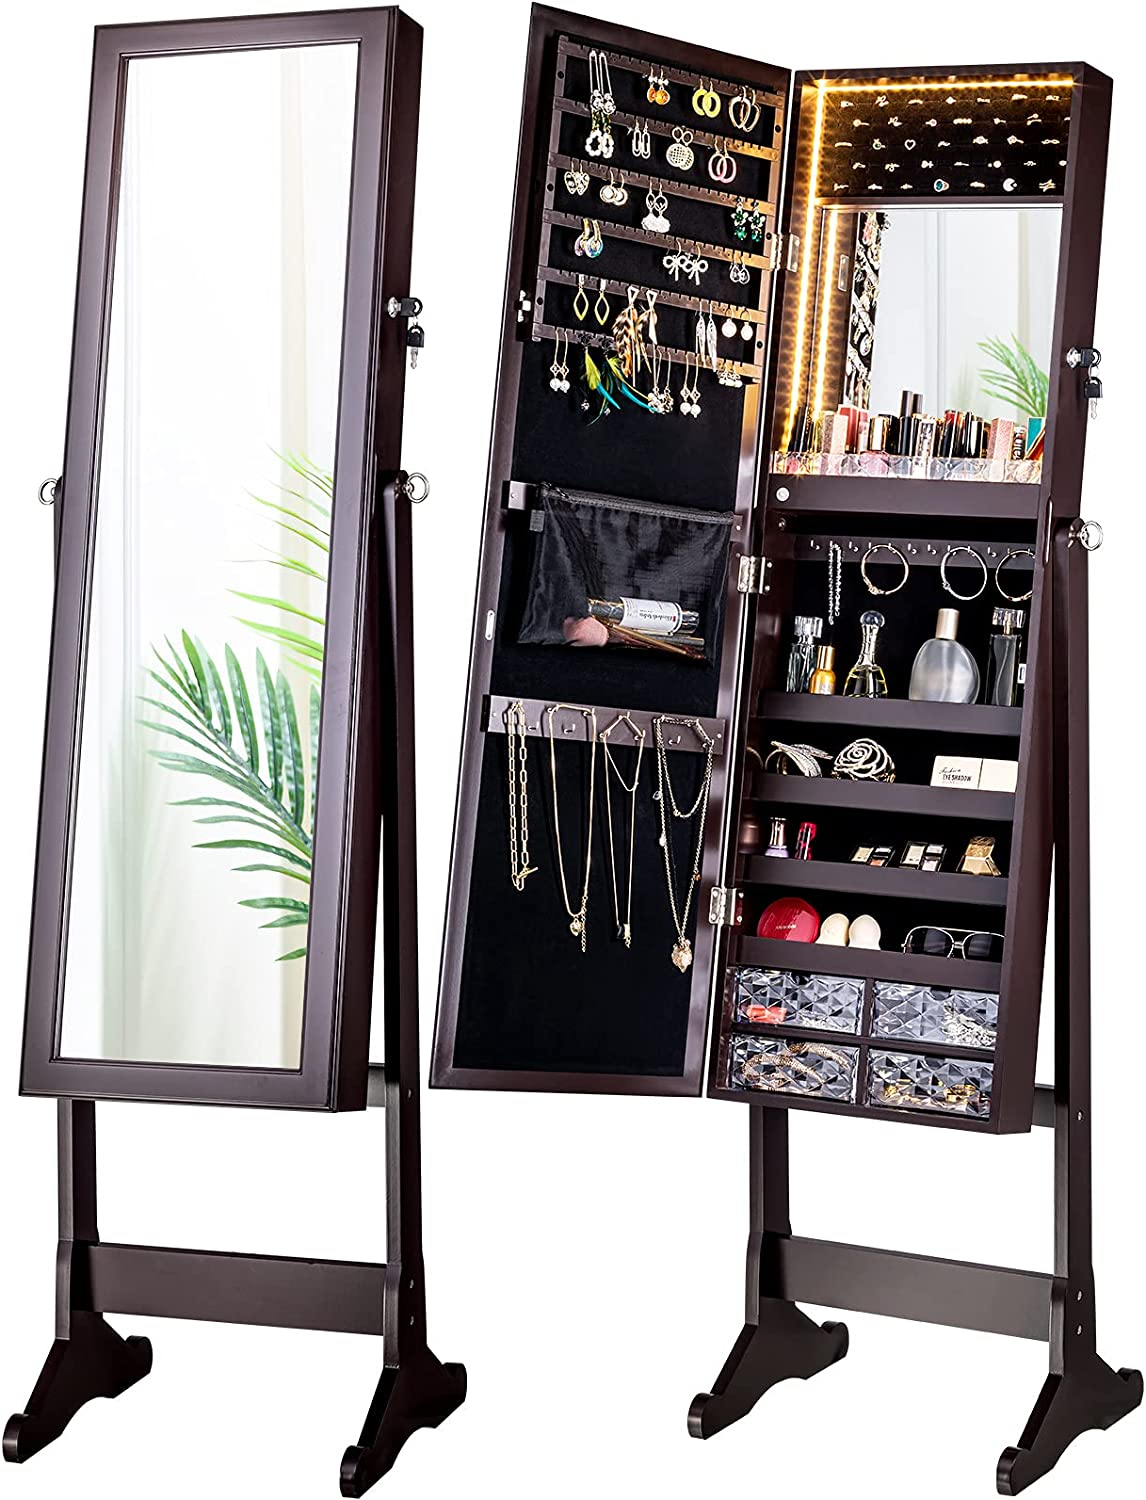 LUXFURNI LED Light Jewelry Cabinet Armoire, Standing Mirror Makeup Lockable Large Storage Organizer w/Drawers (white, L) : Clothing, Shoes & Jewelry